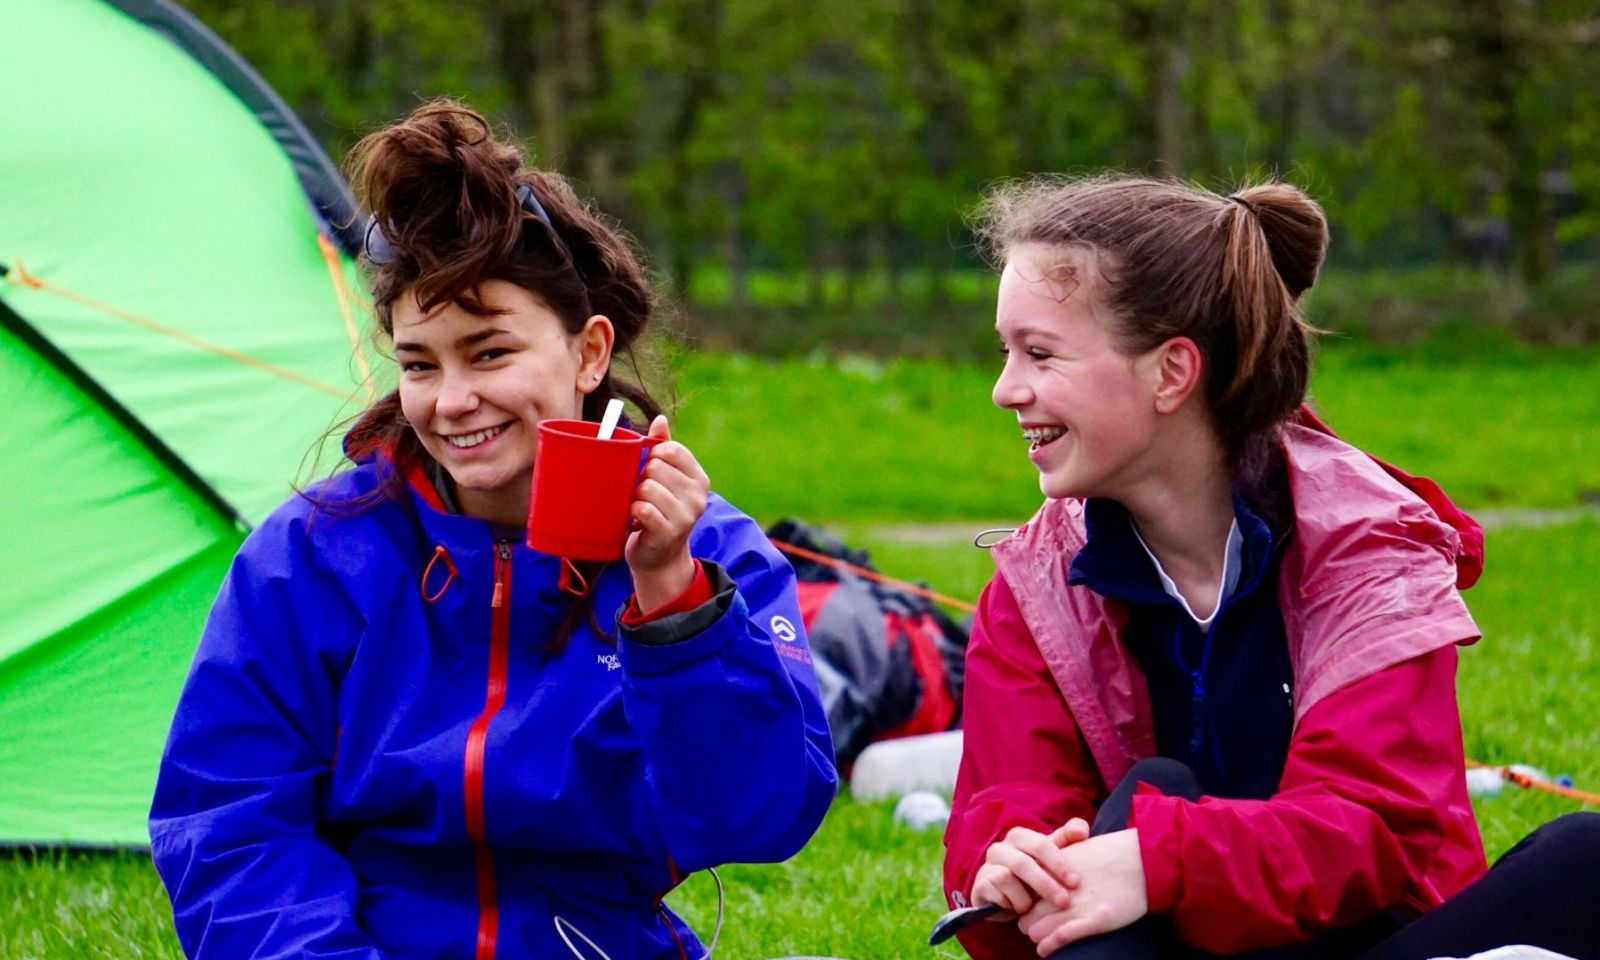 2 girls on their DofE expedition smiling and having fun.